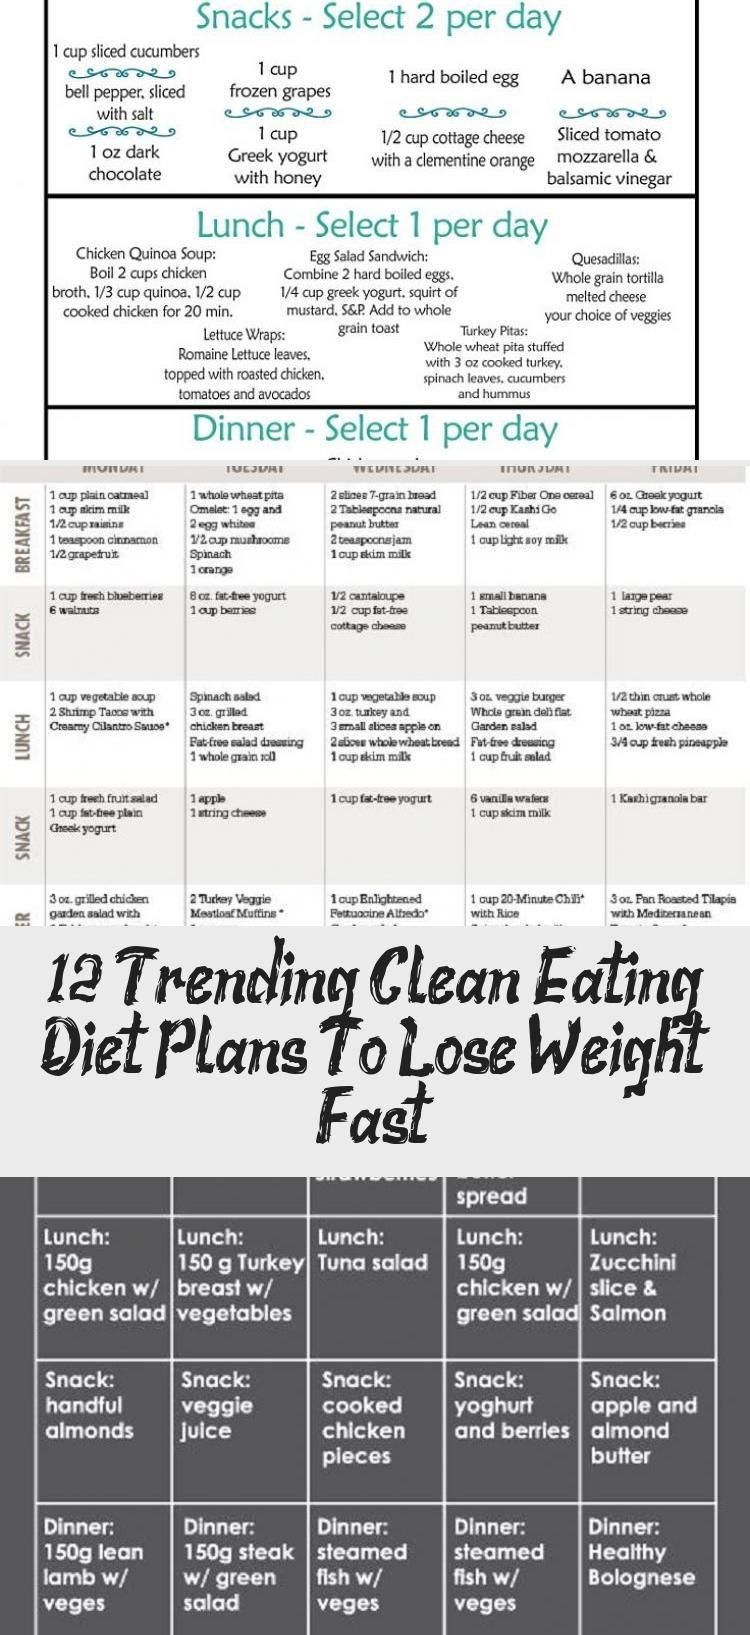 12 Trending Clean Eating Diet Plans To Lose Weight Fast - health and diet fitness  Healthy Eating Me...